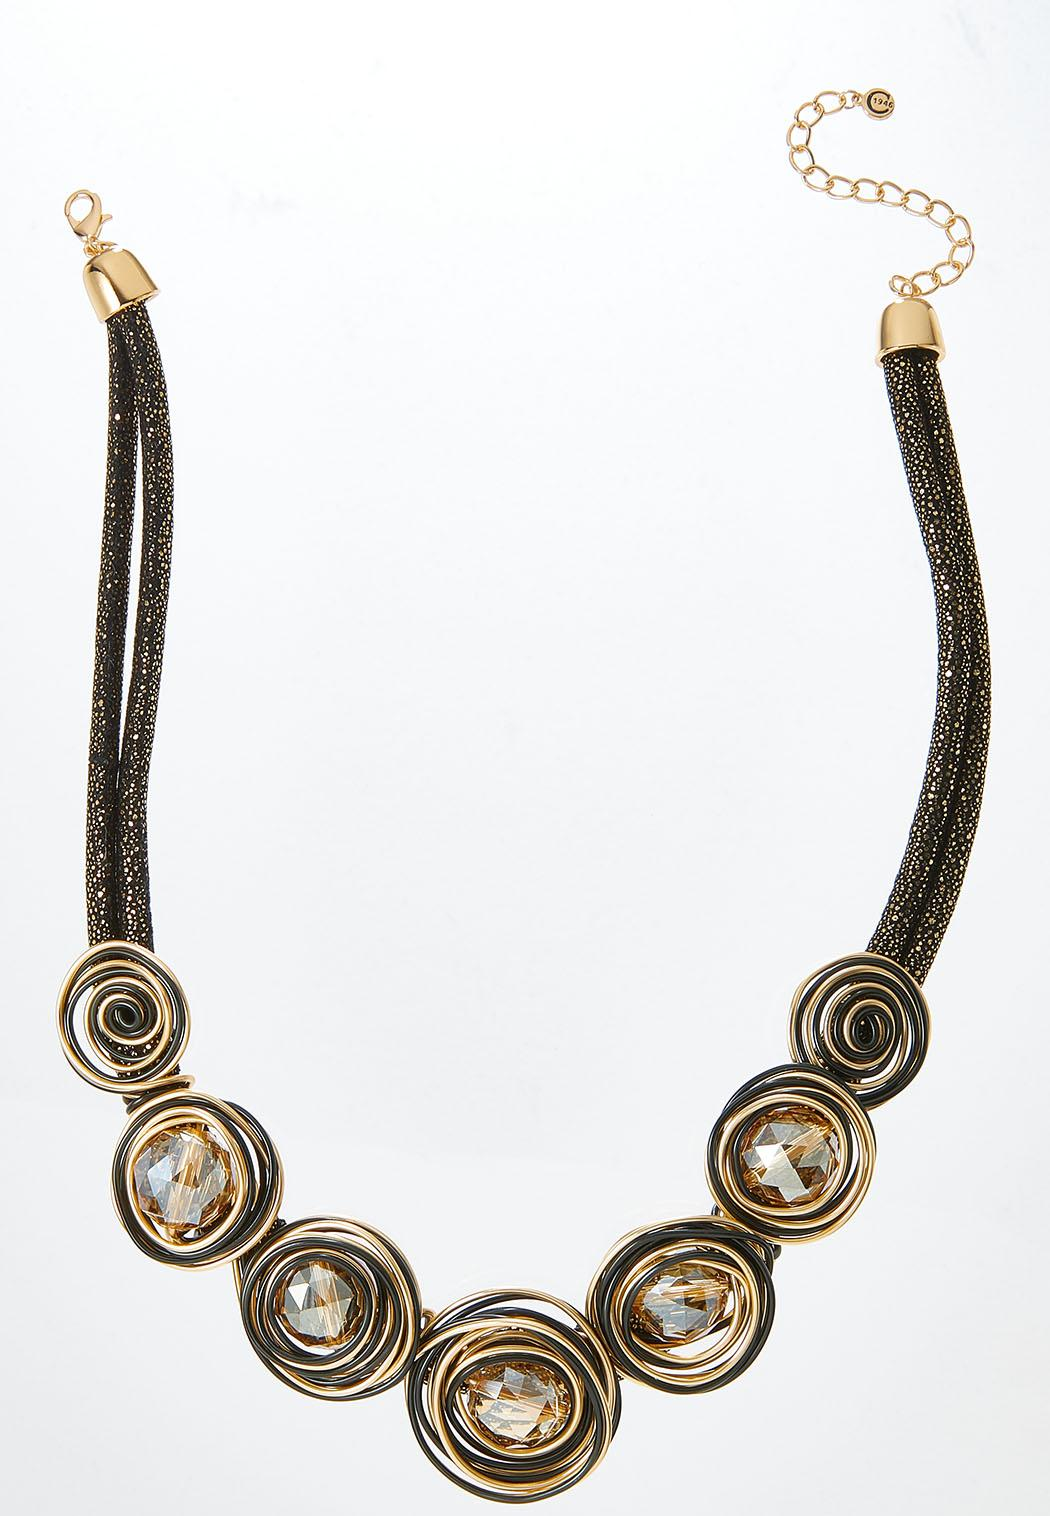 Two-Toned Metallic Cord Necklace